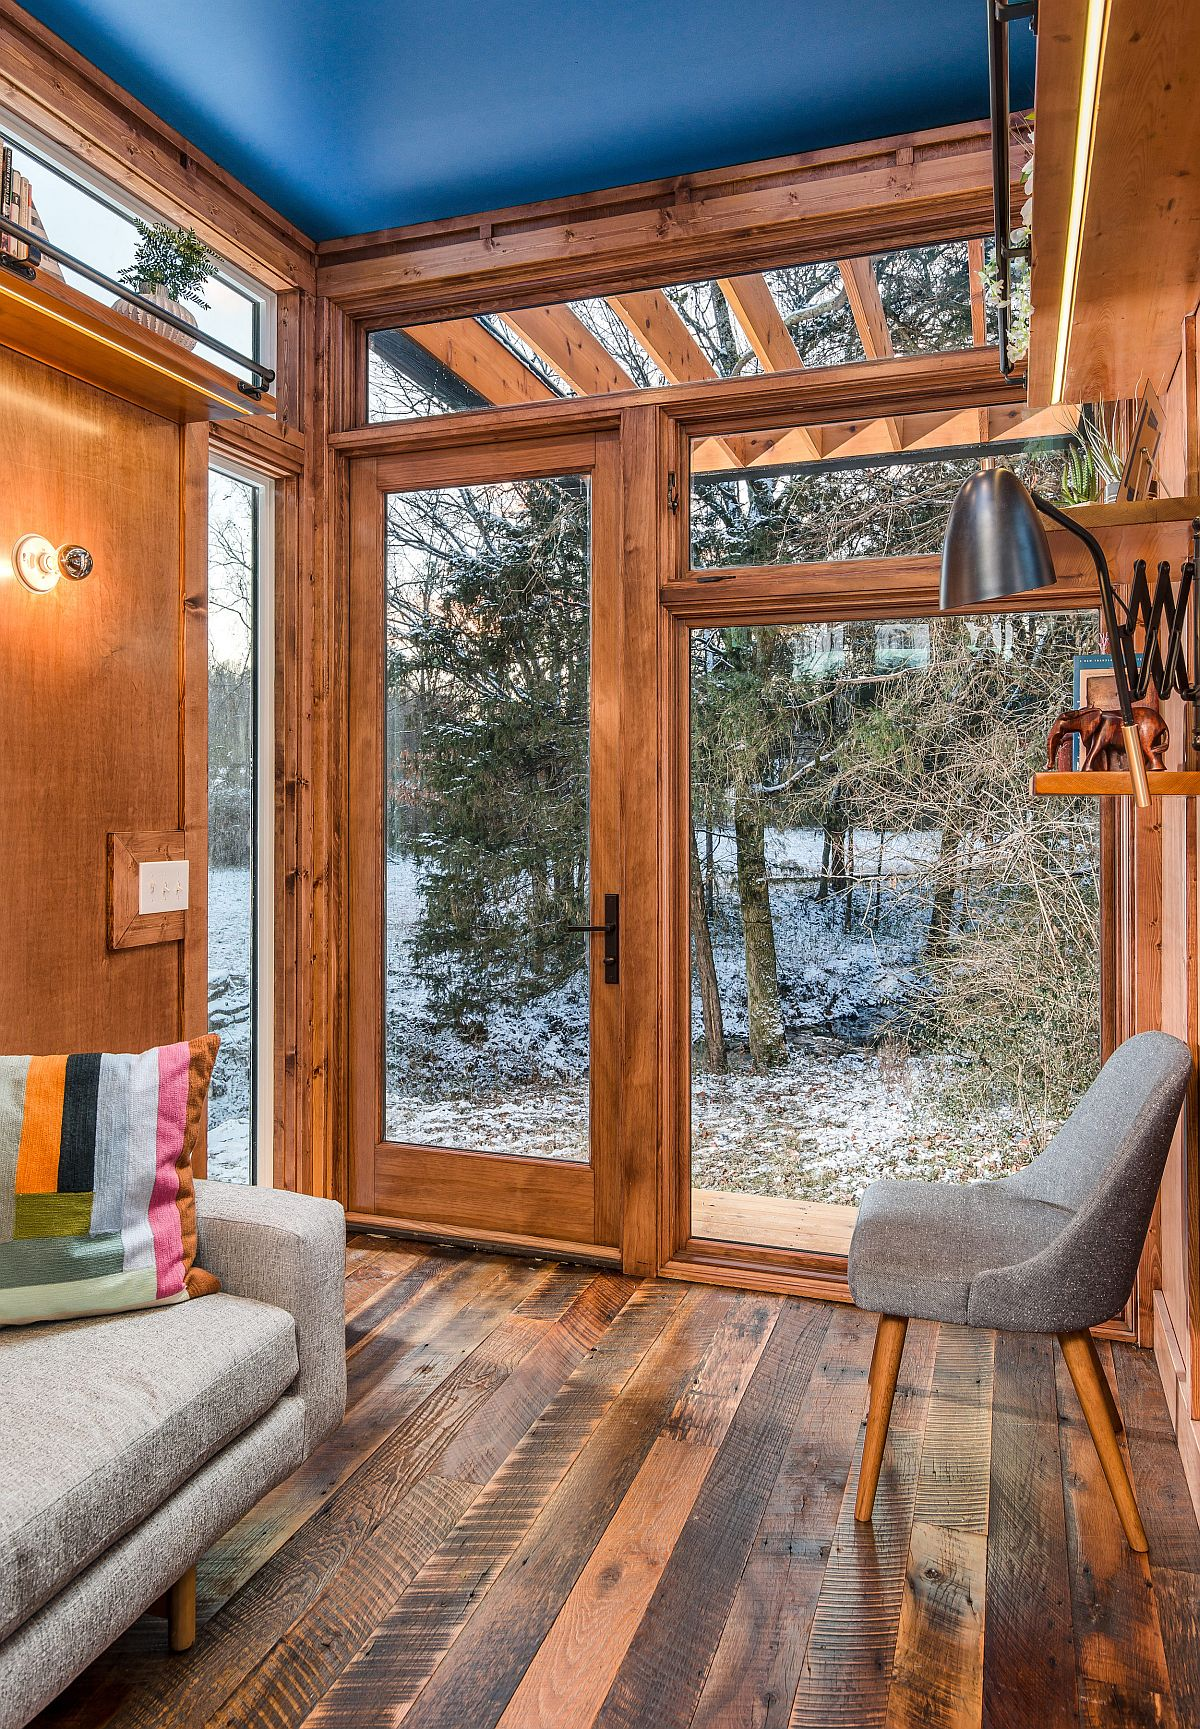 Large glass doors and windows bring light into the small cabin